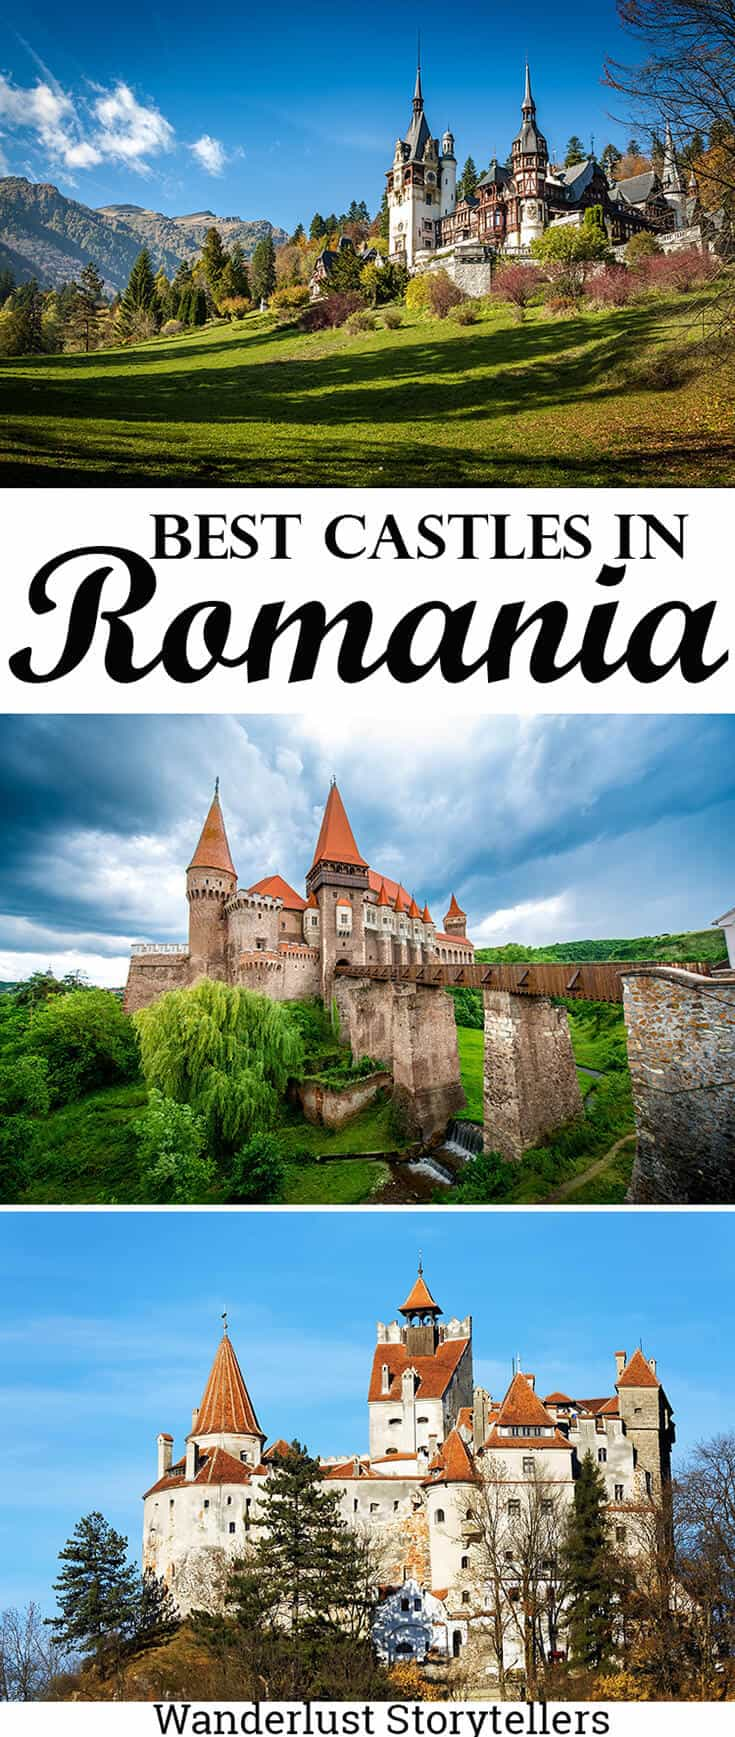 13 of the Best Castles in Romania